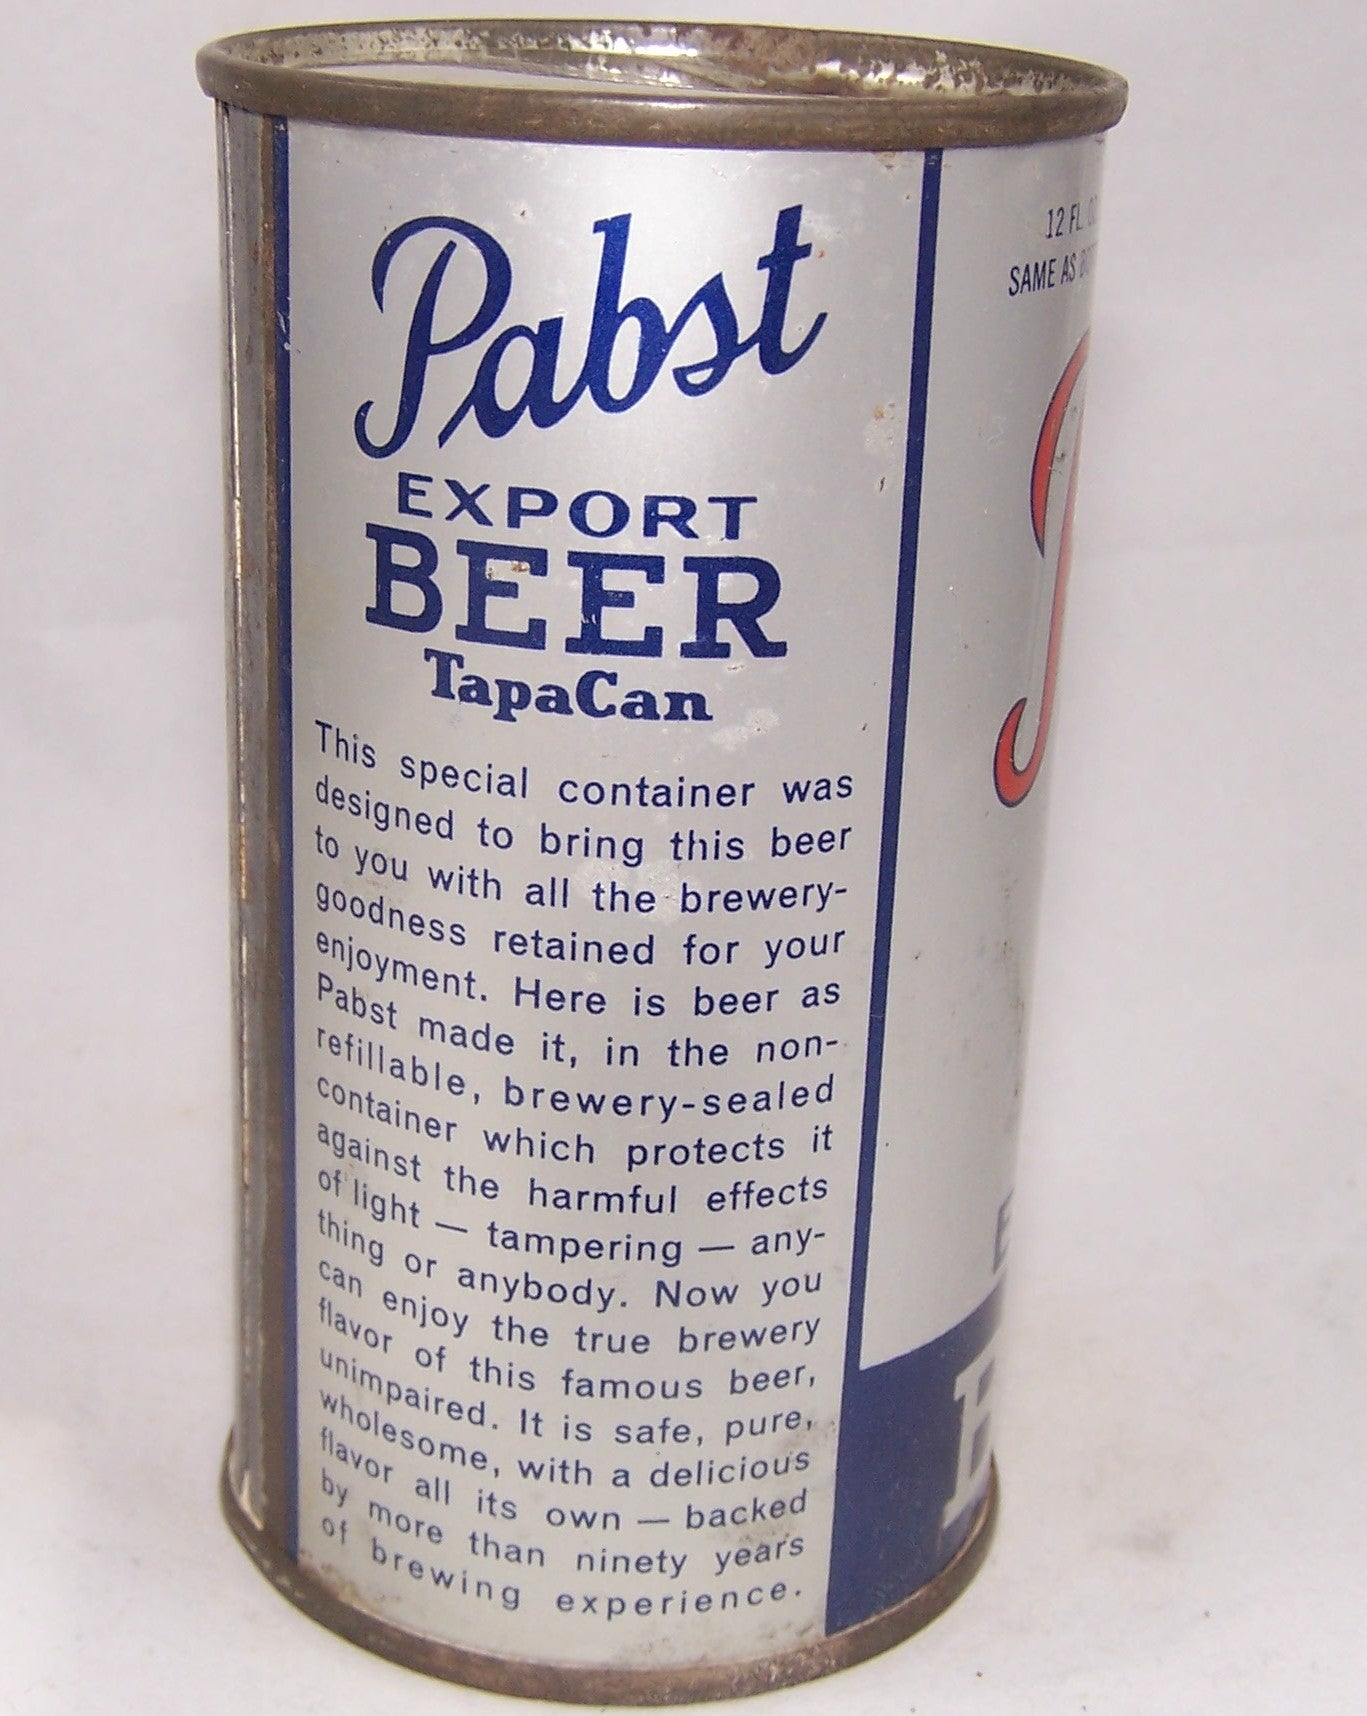 Pabst Export Beer, Lilek #648, Grade 1 Sold on 08/24/17